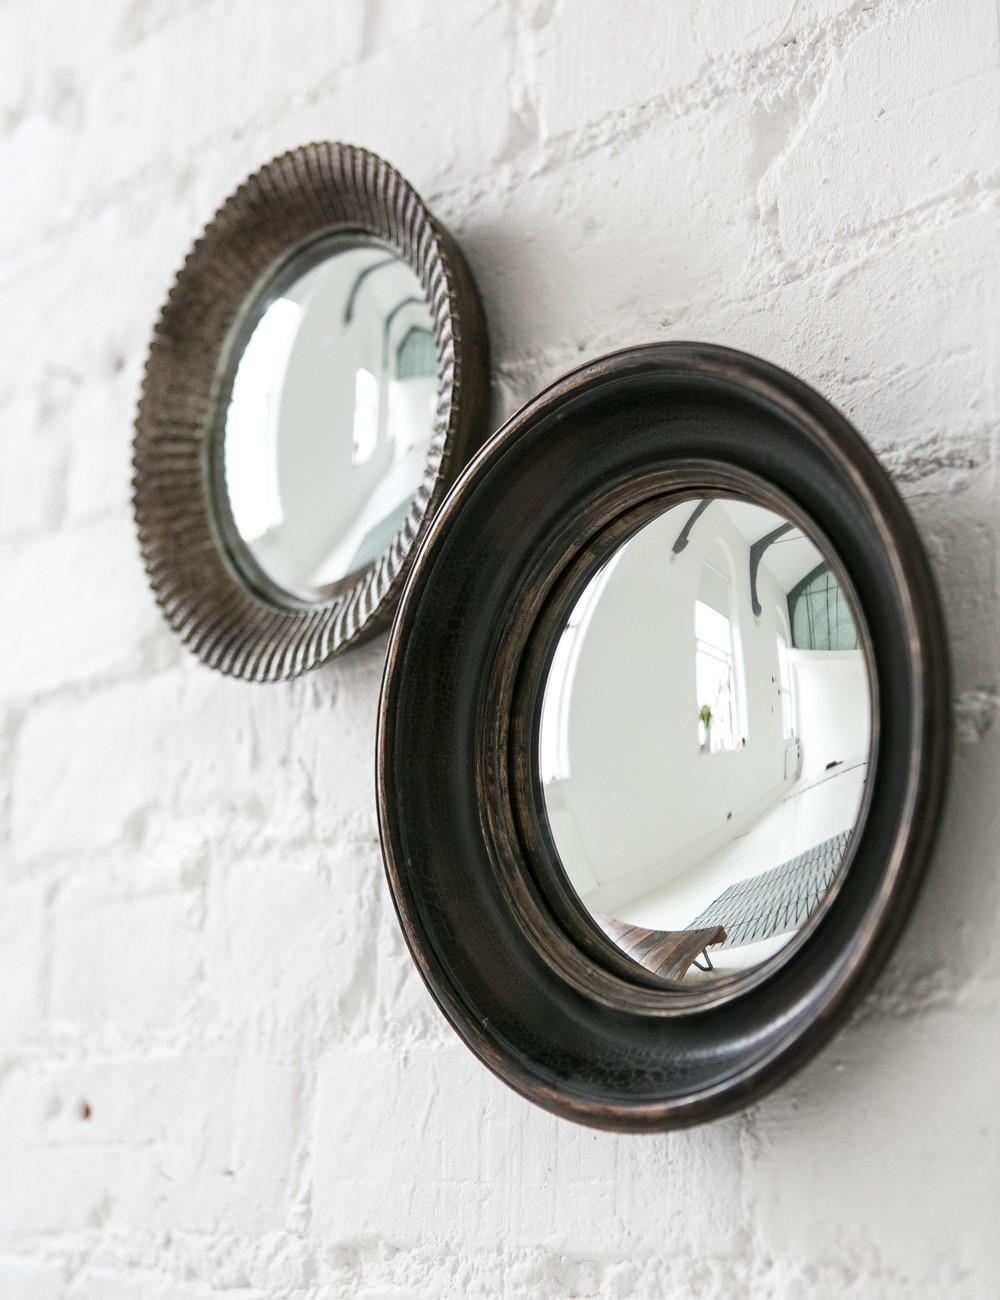 Small Convex Mirror For Creating Striking Wall Decoration | Homesfeed Inside Small Round Convex Mirror (Image 18 of 20)